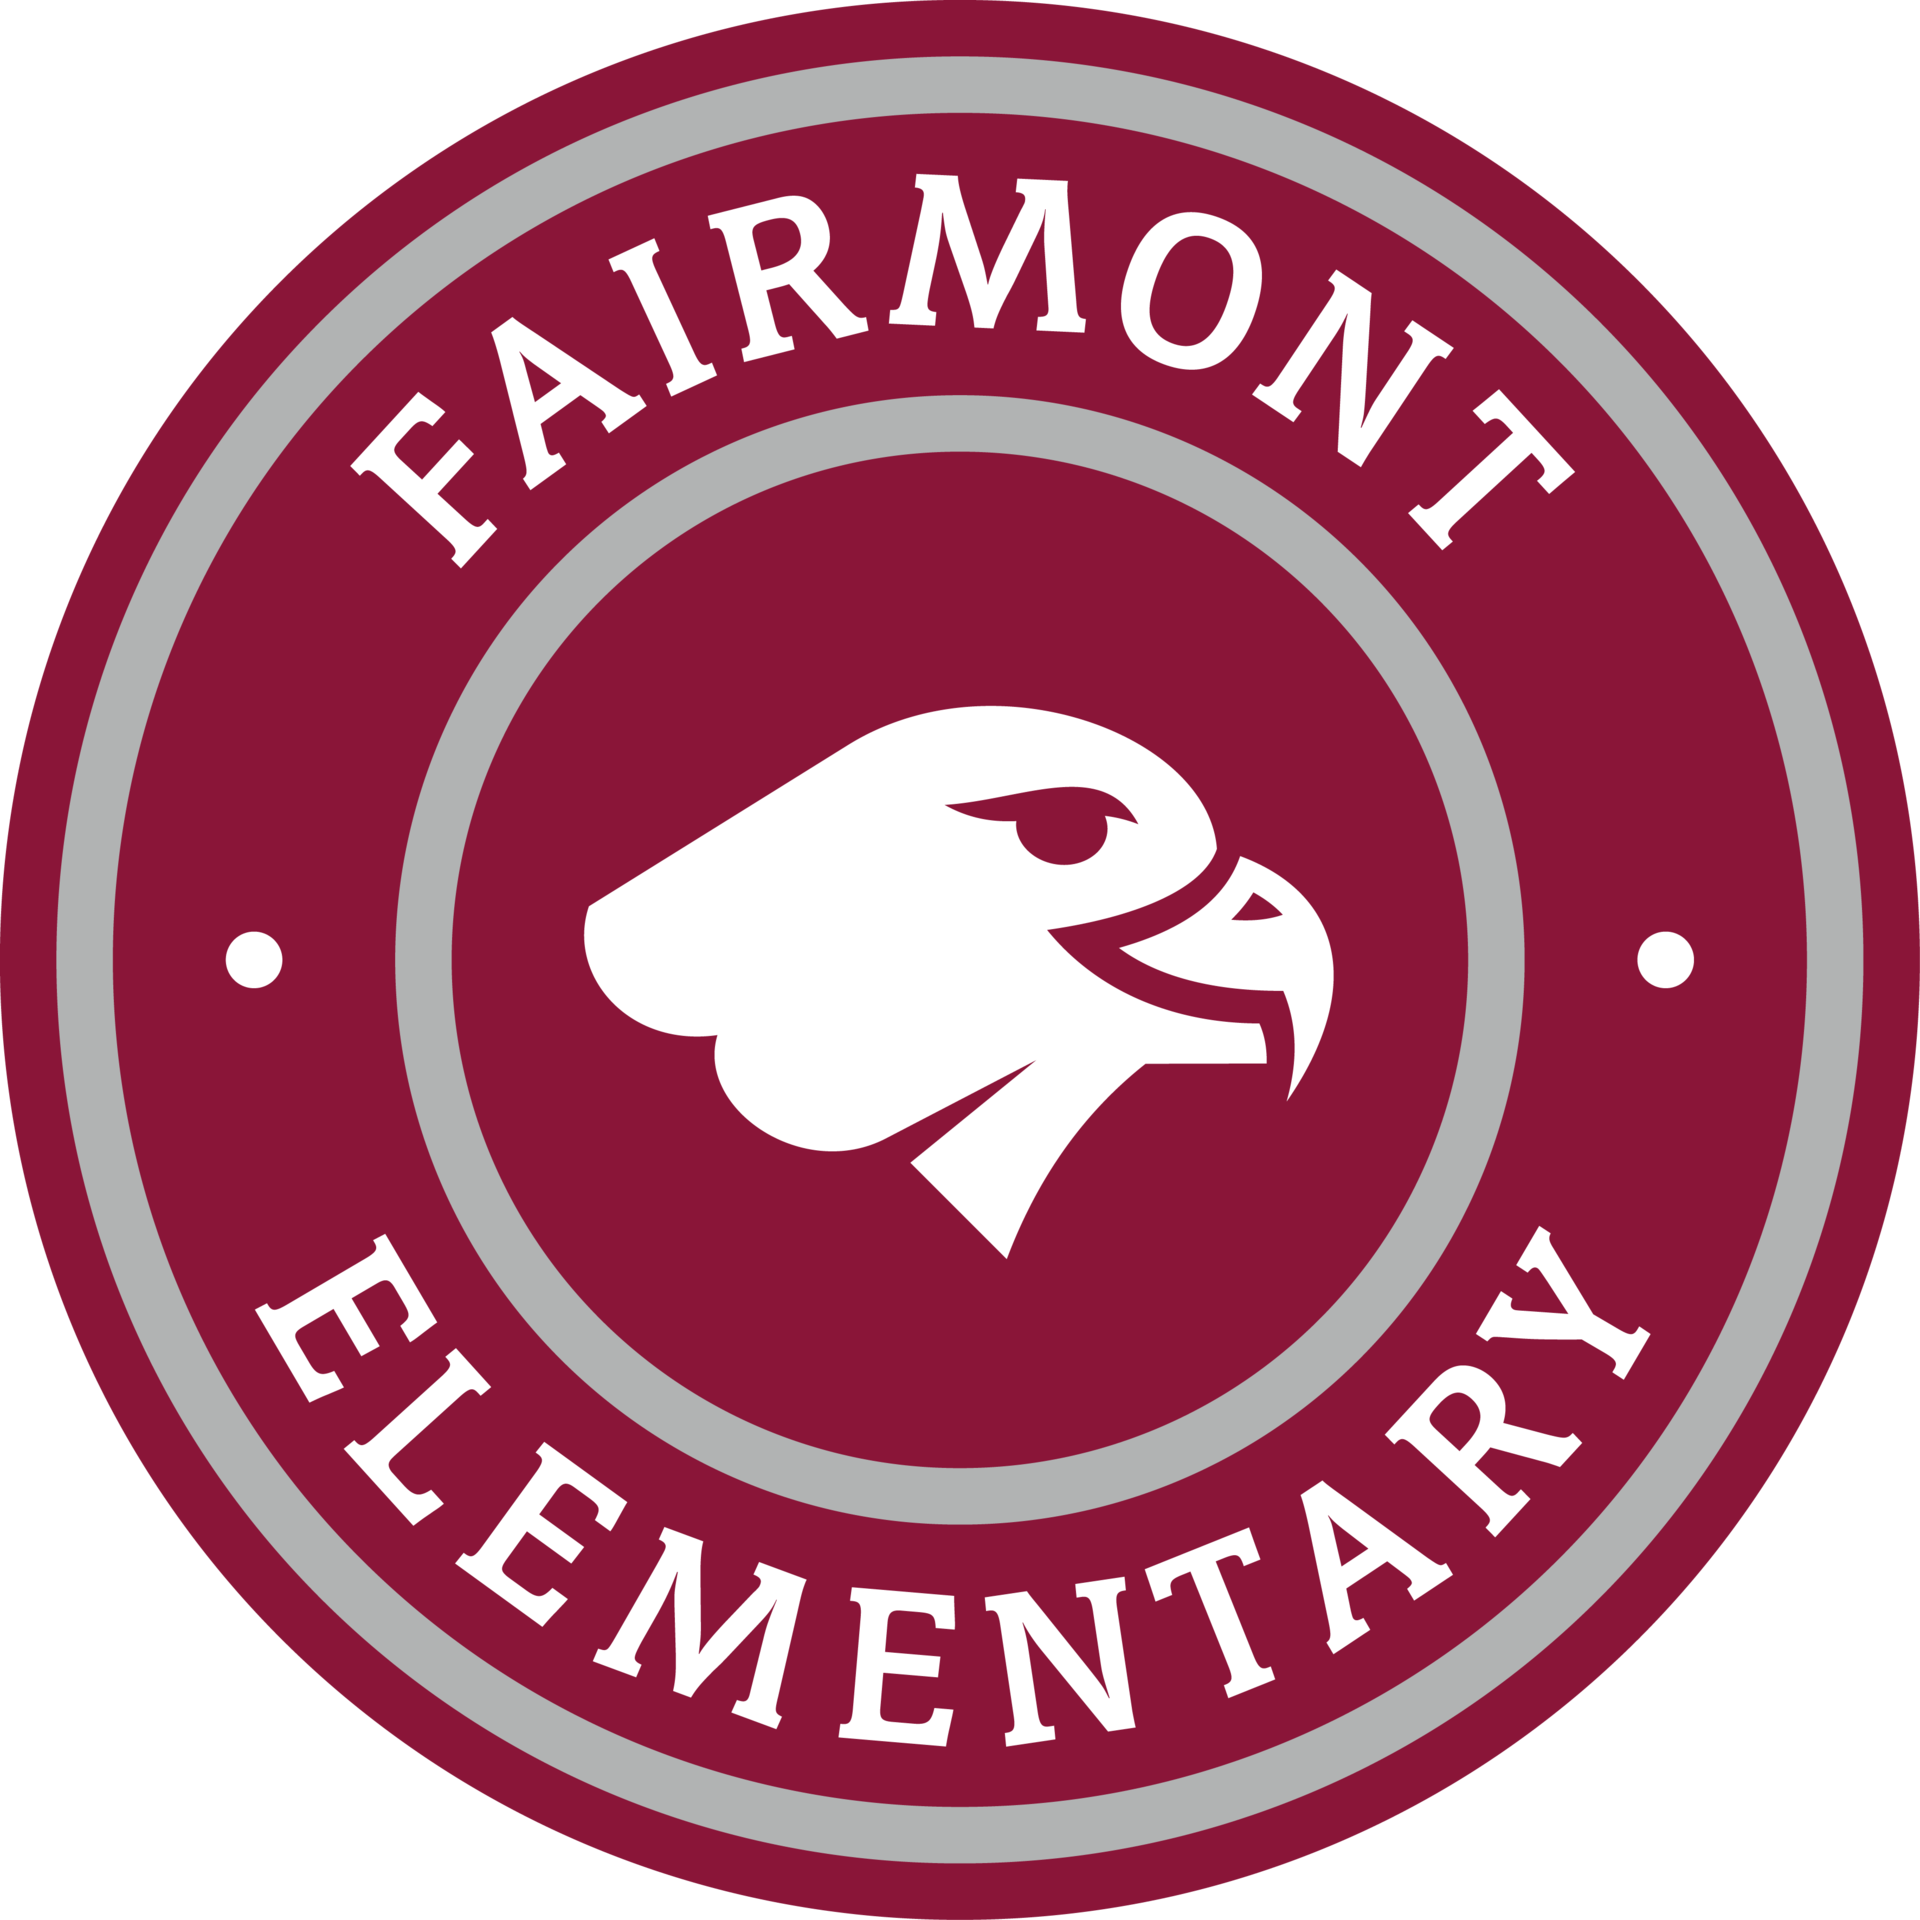 Fairmont Elementary school seal